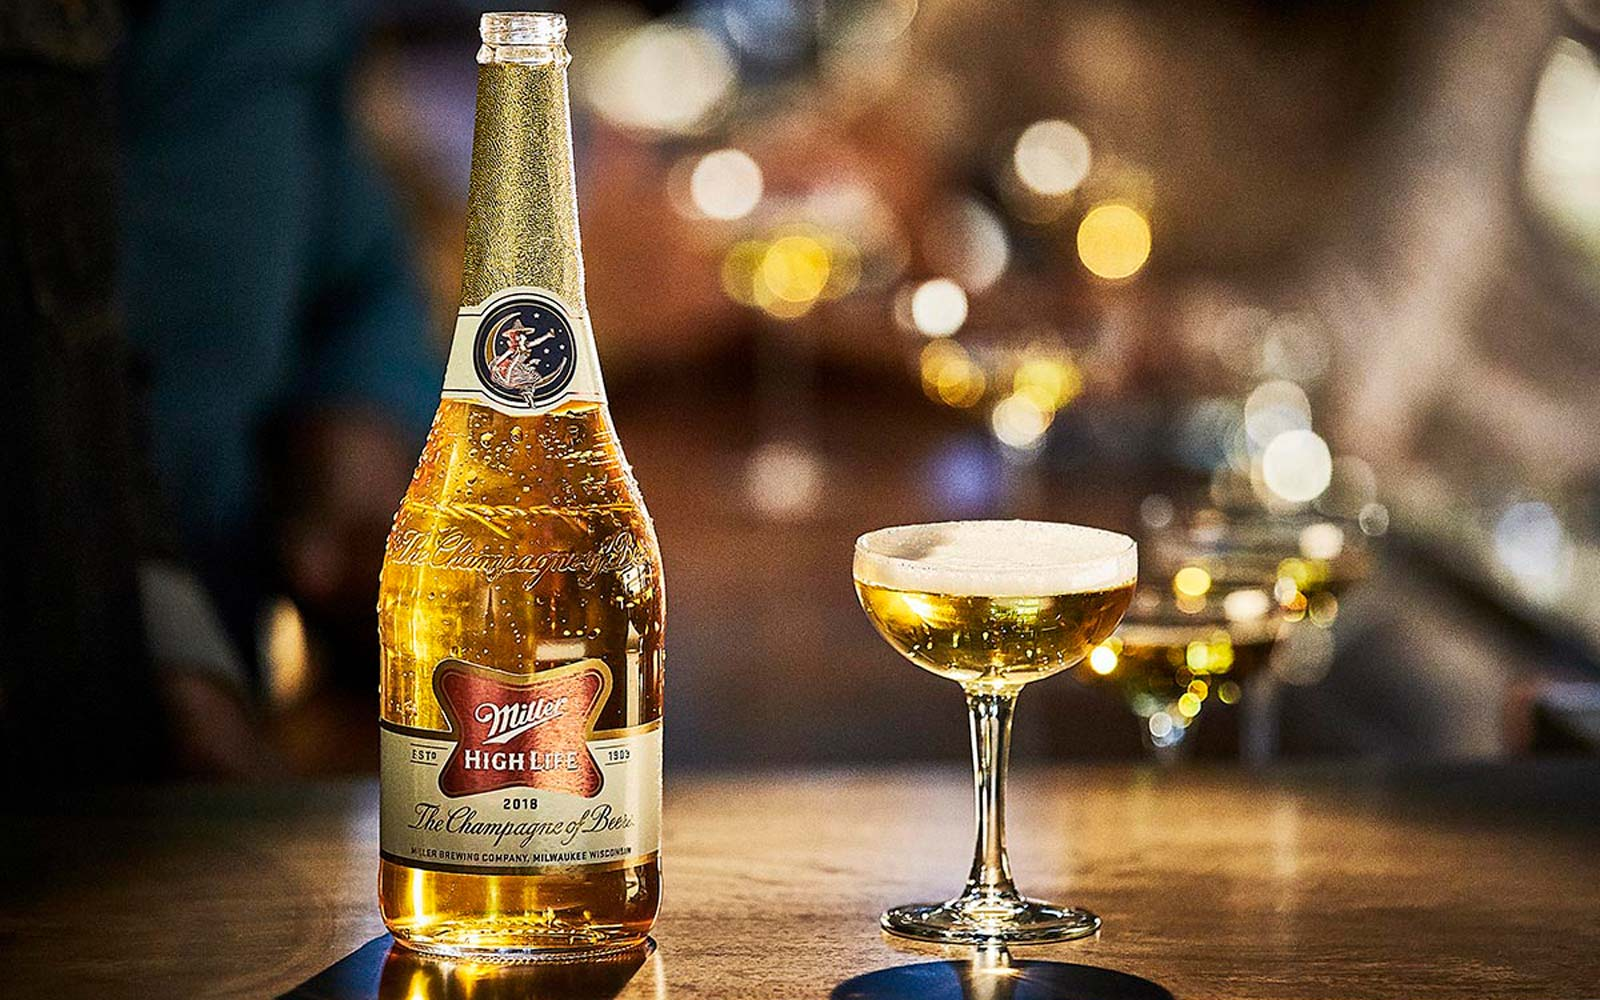 Miller High Life's new champagne bottle design